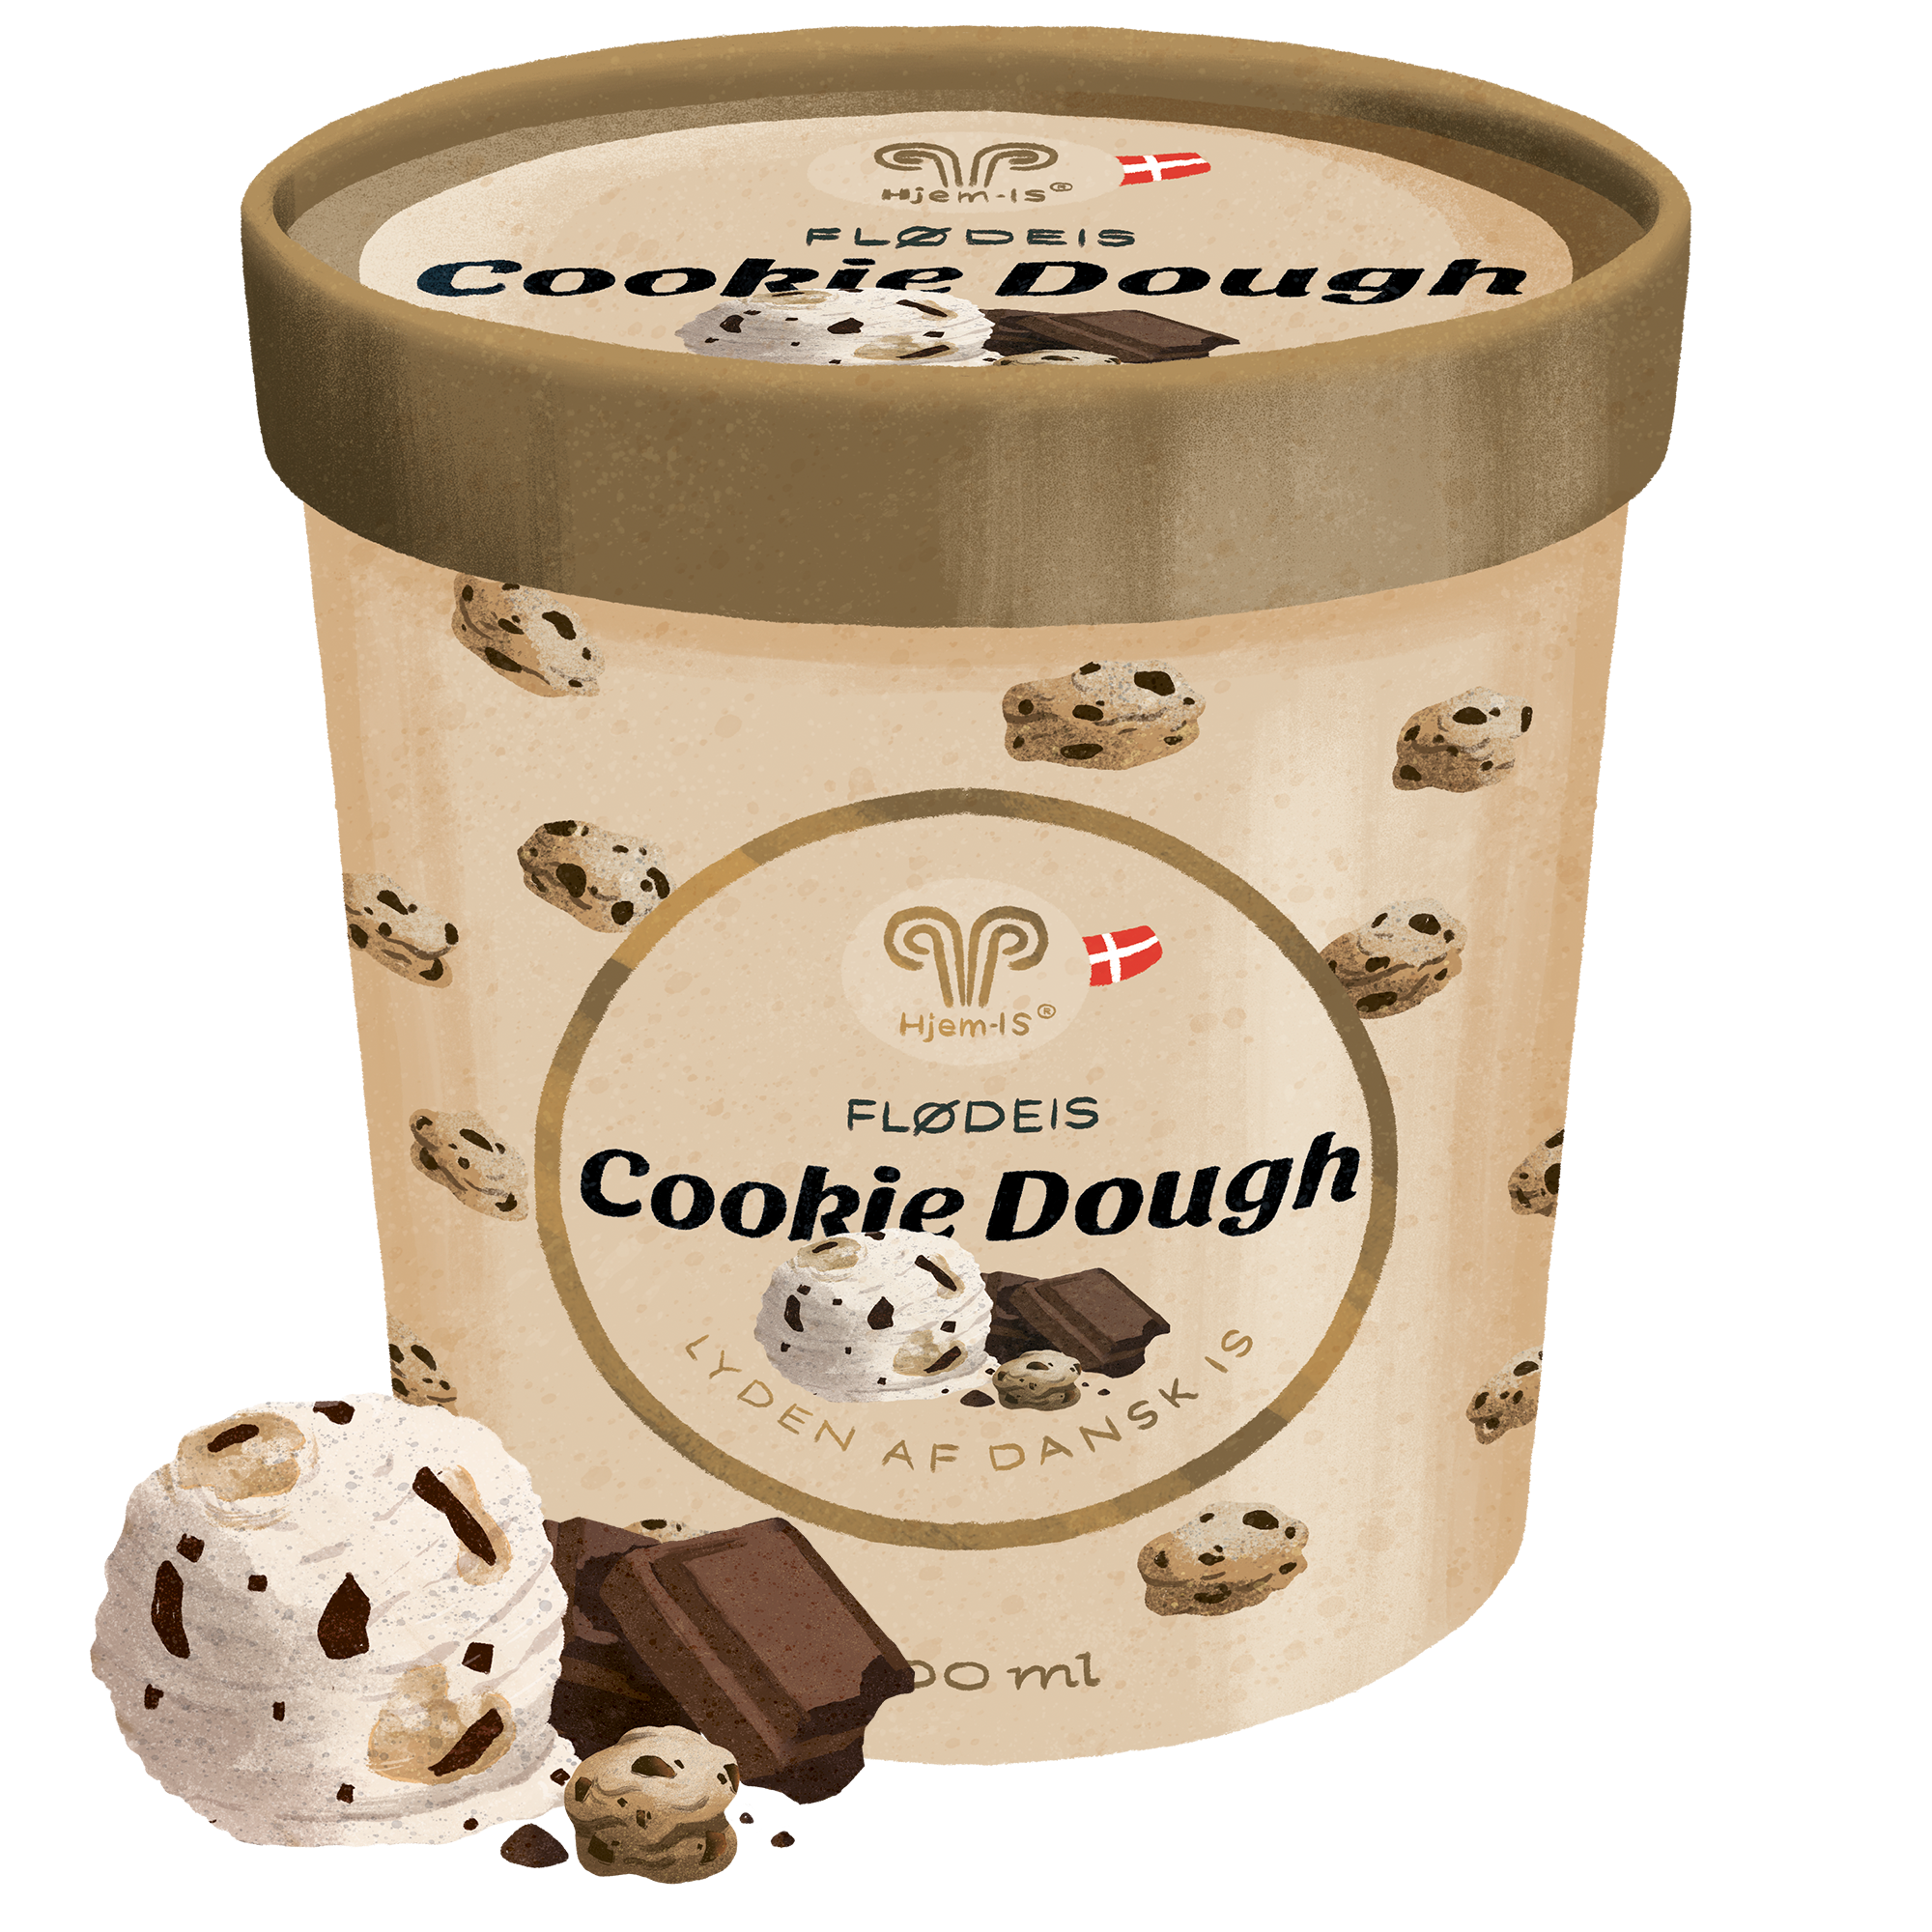 Cookie Dough Flødeis